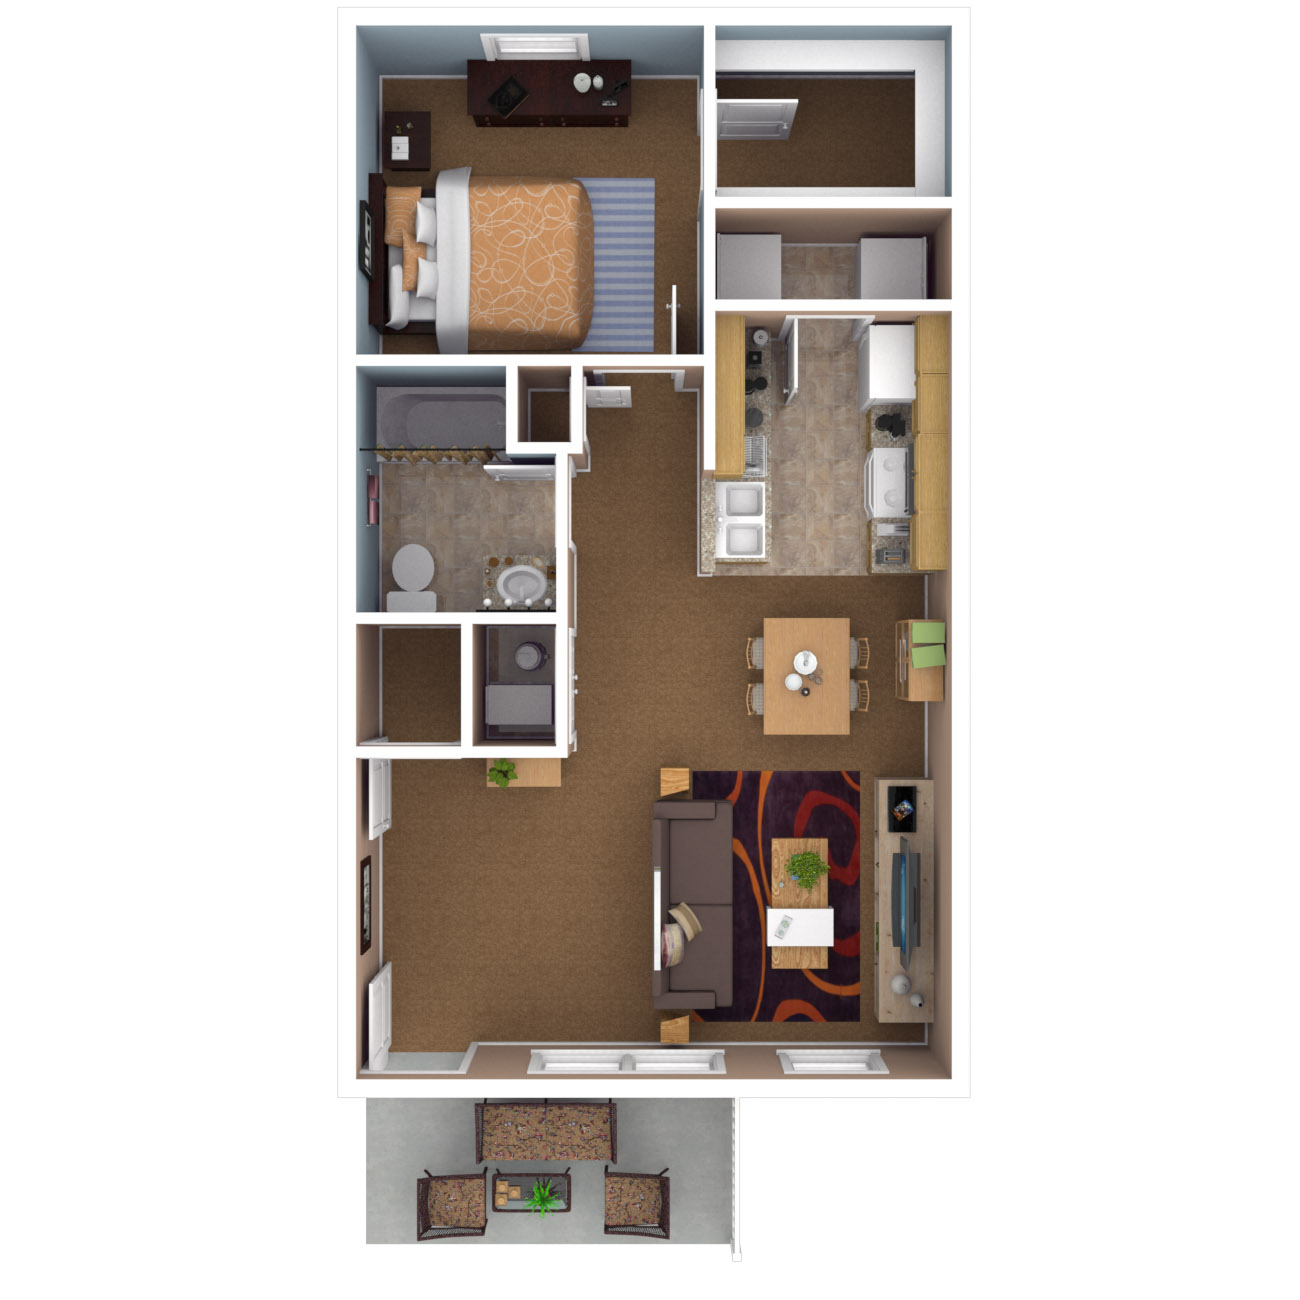 Apartments in indianapolis floor plans for 1 bedroom apartment layout